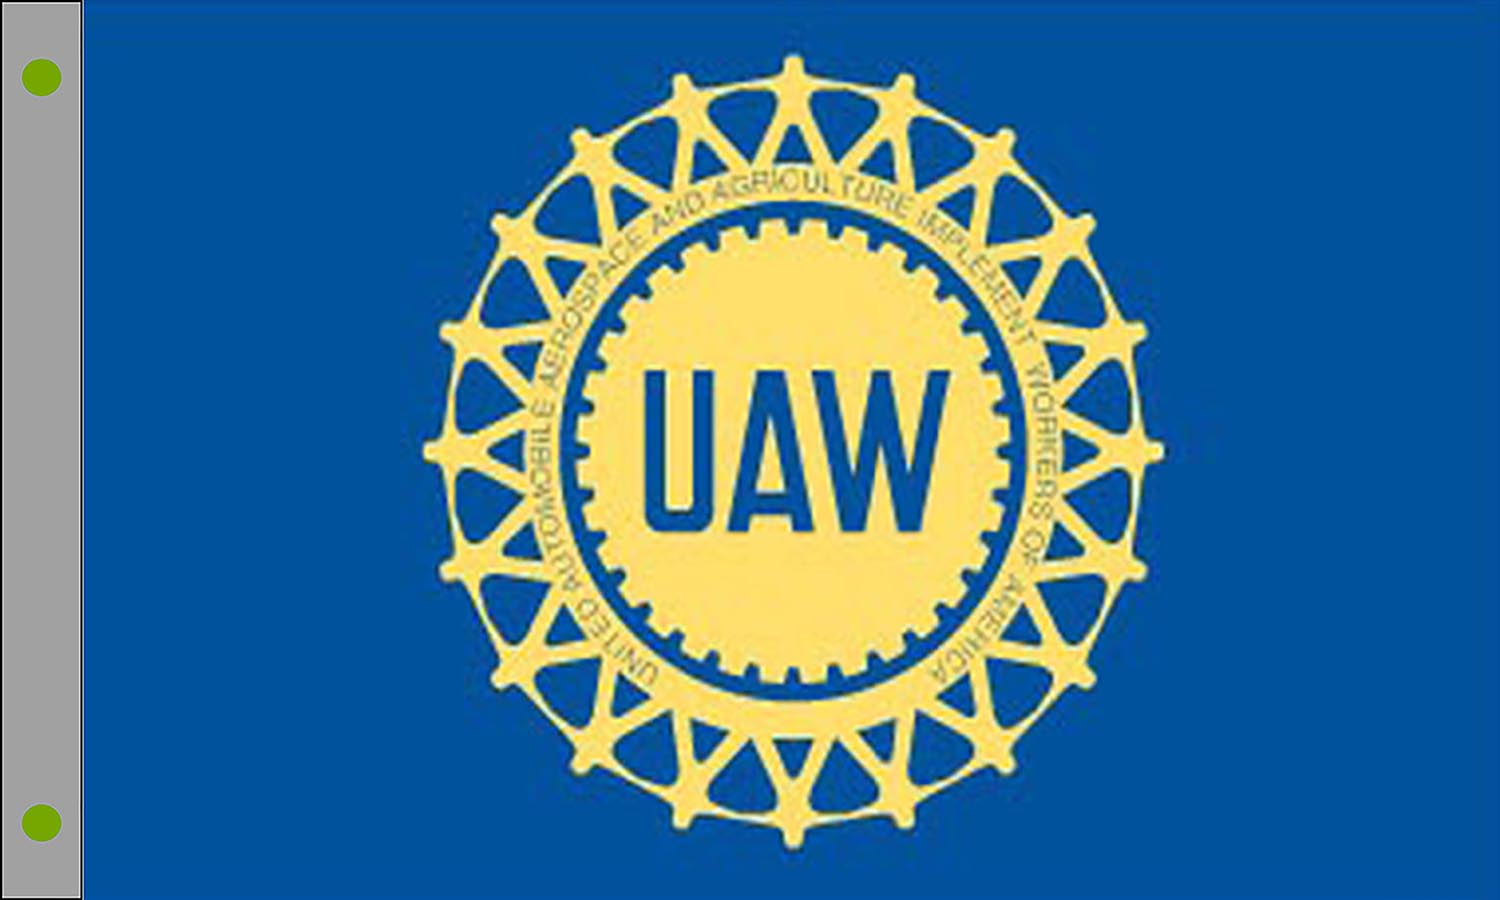 United Auto Workers Flags